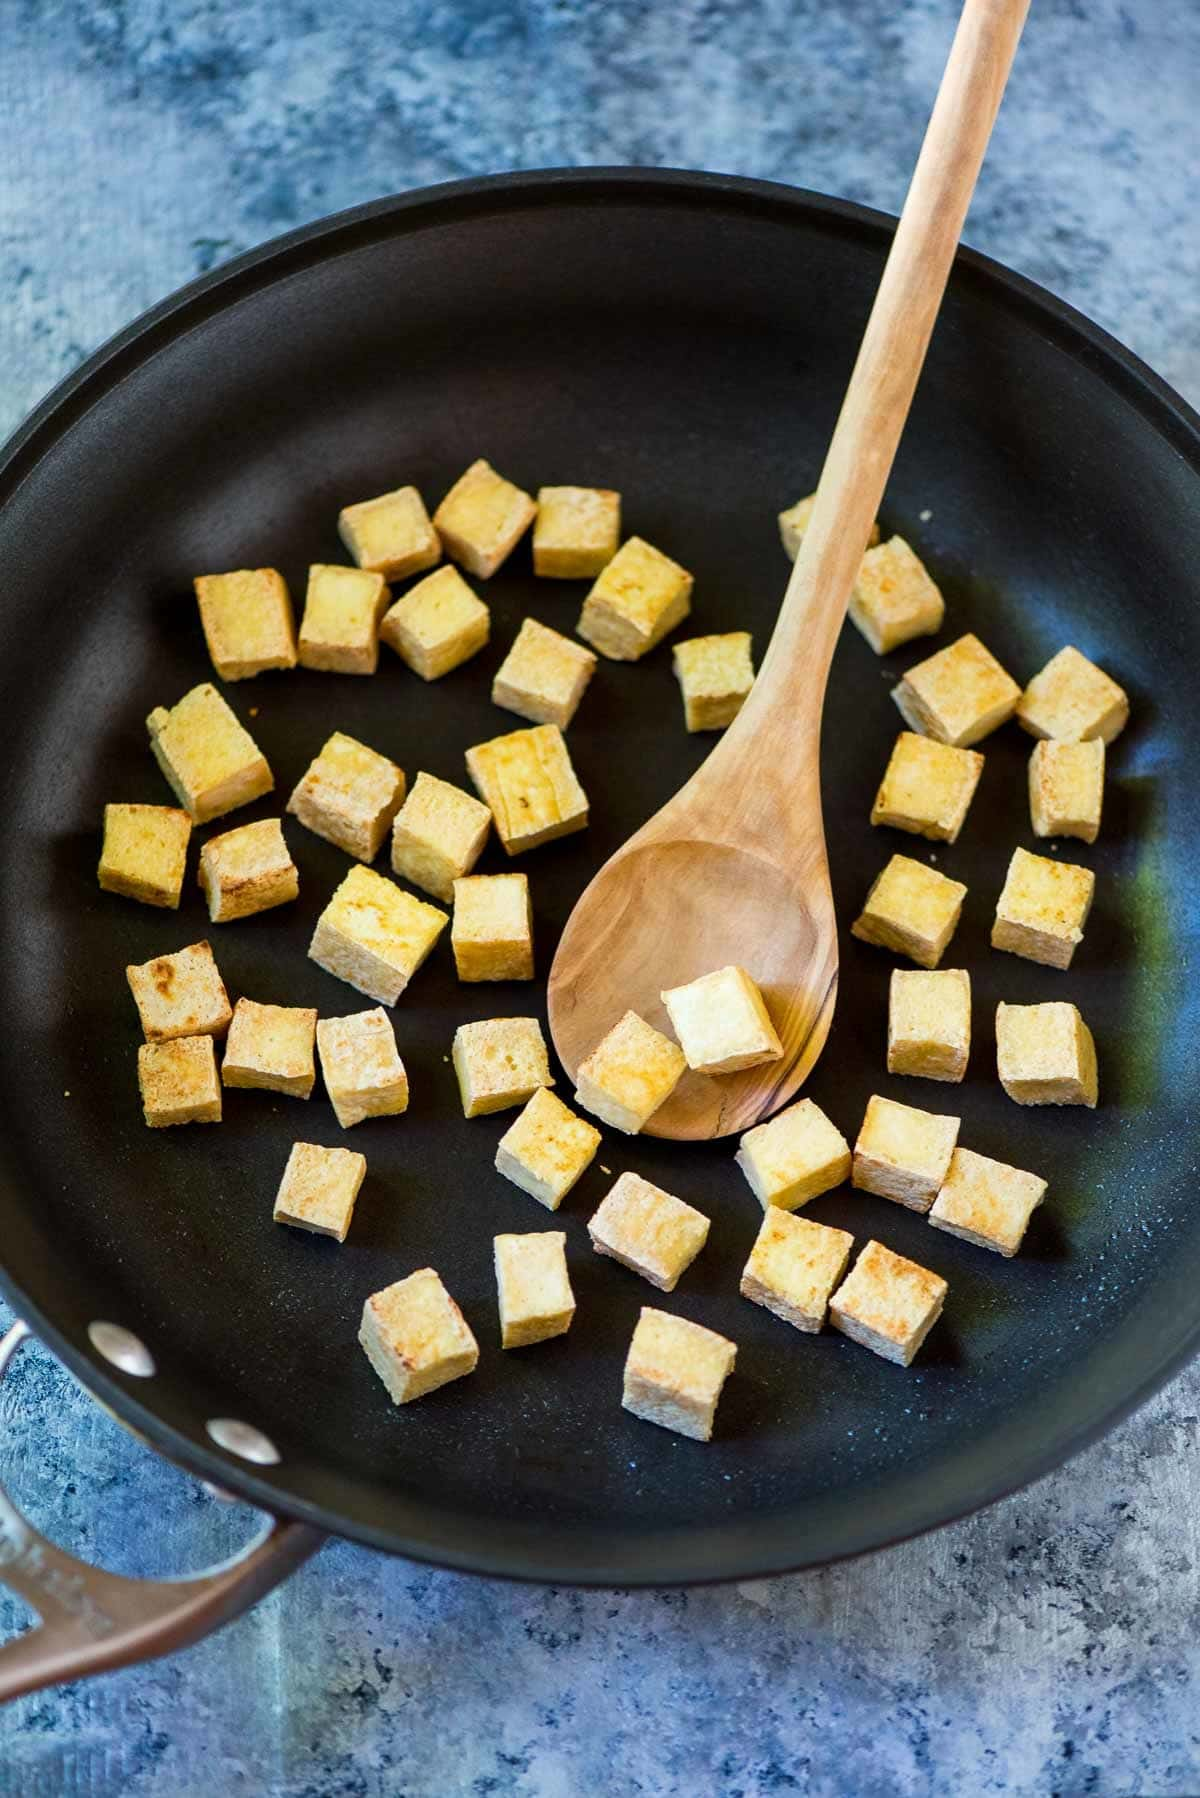 How to make Crispy Tofu that actually tastes great! No baking, pressing or frying required! This one simple trick is all you need. @wellplated